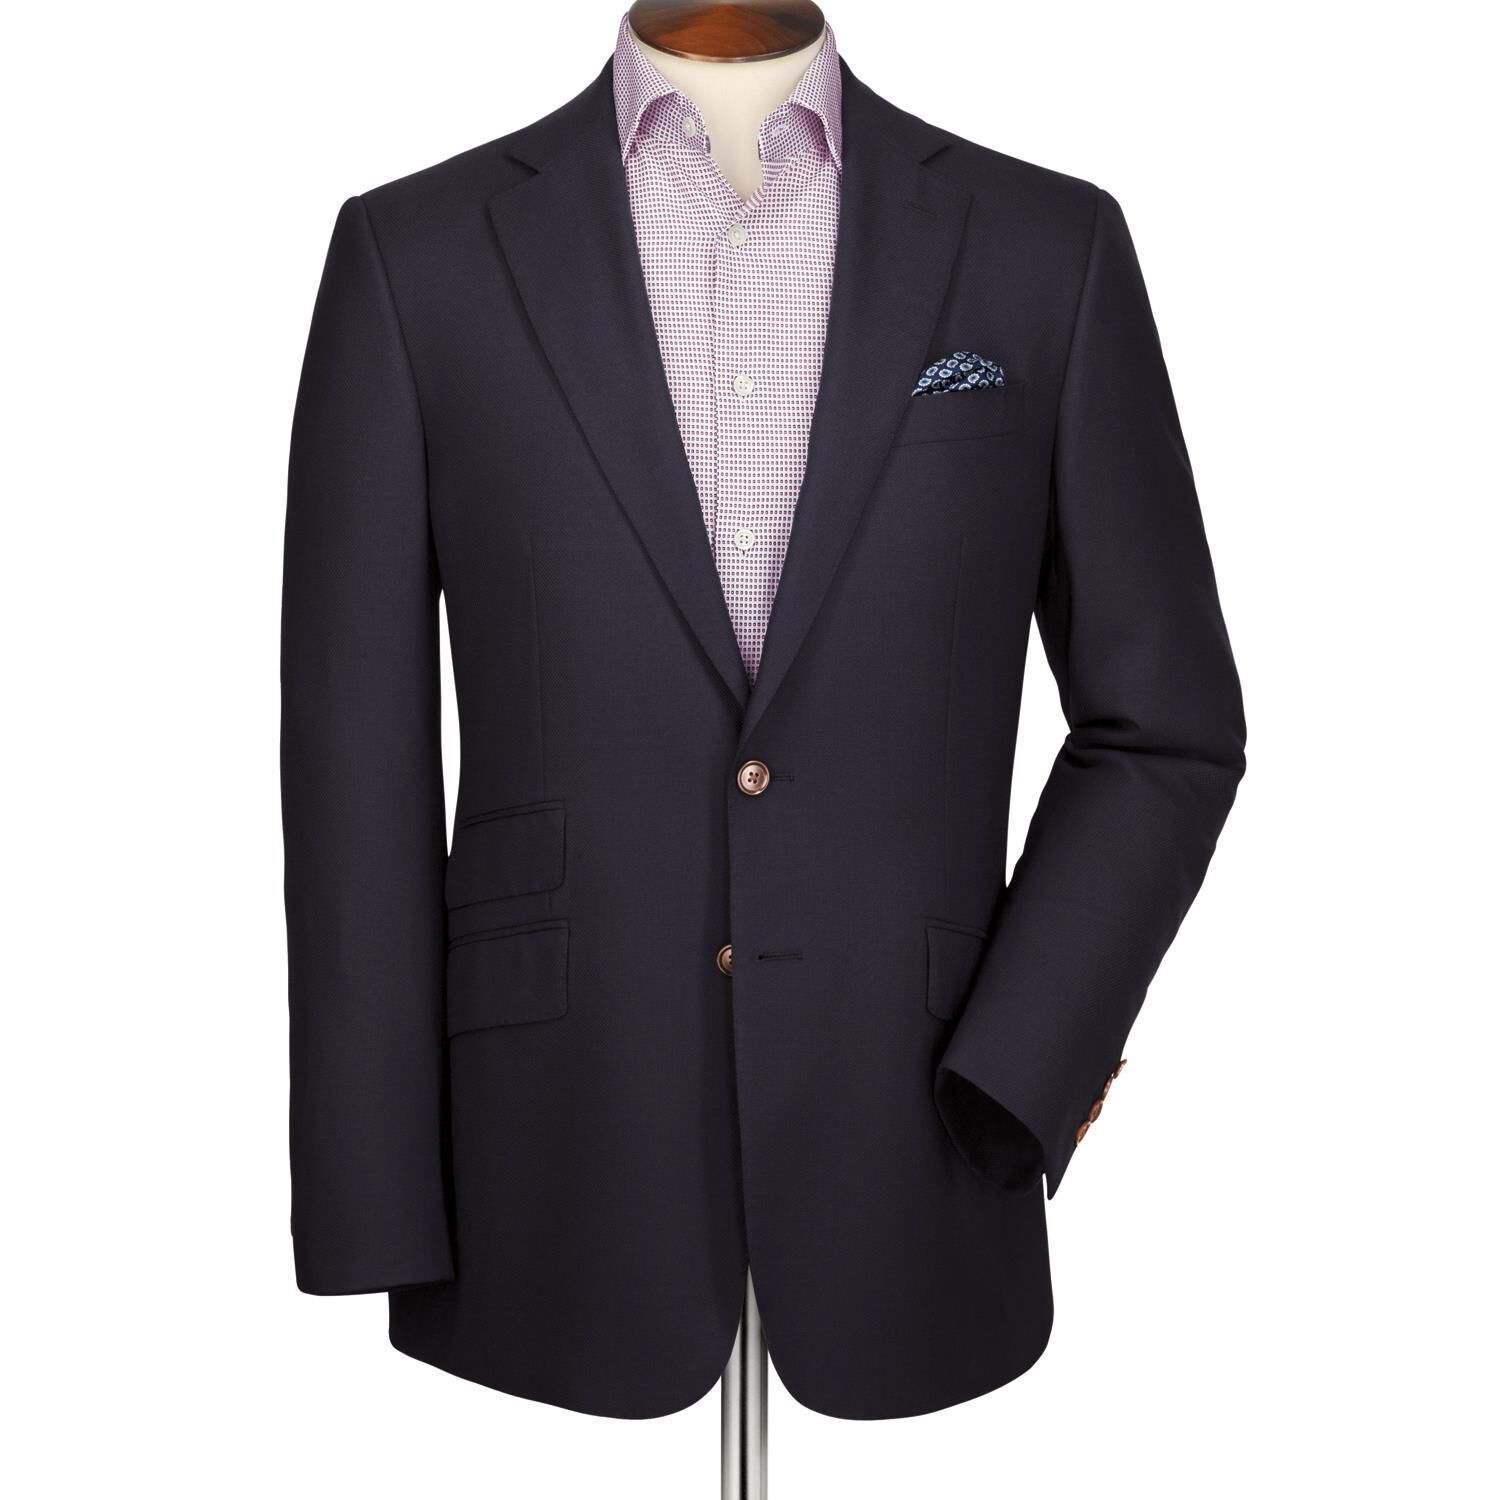 Navy Classic Fit Textured Wool Wool Blazer Size 42 Regular by Charles Tyrwhitt